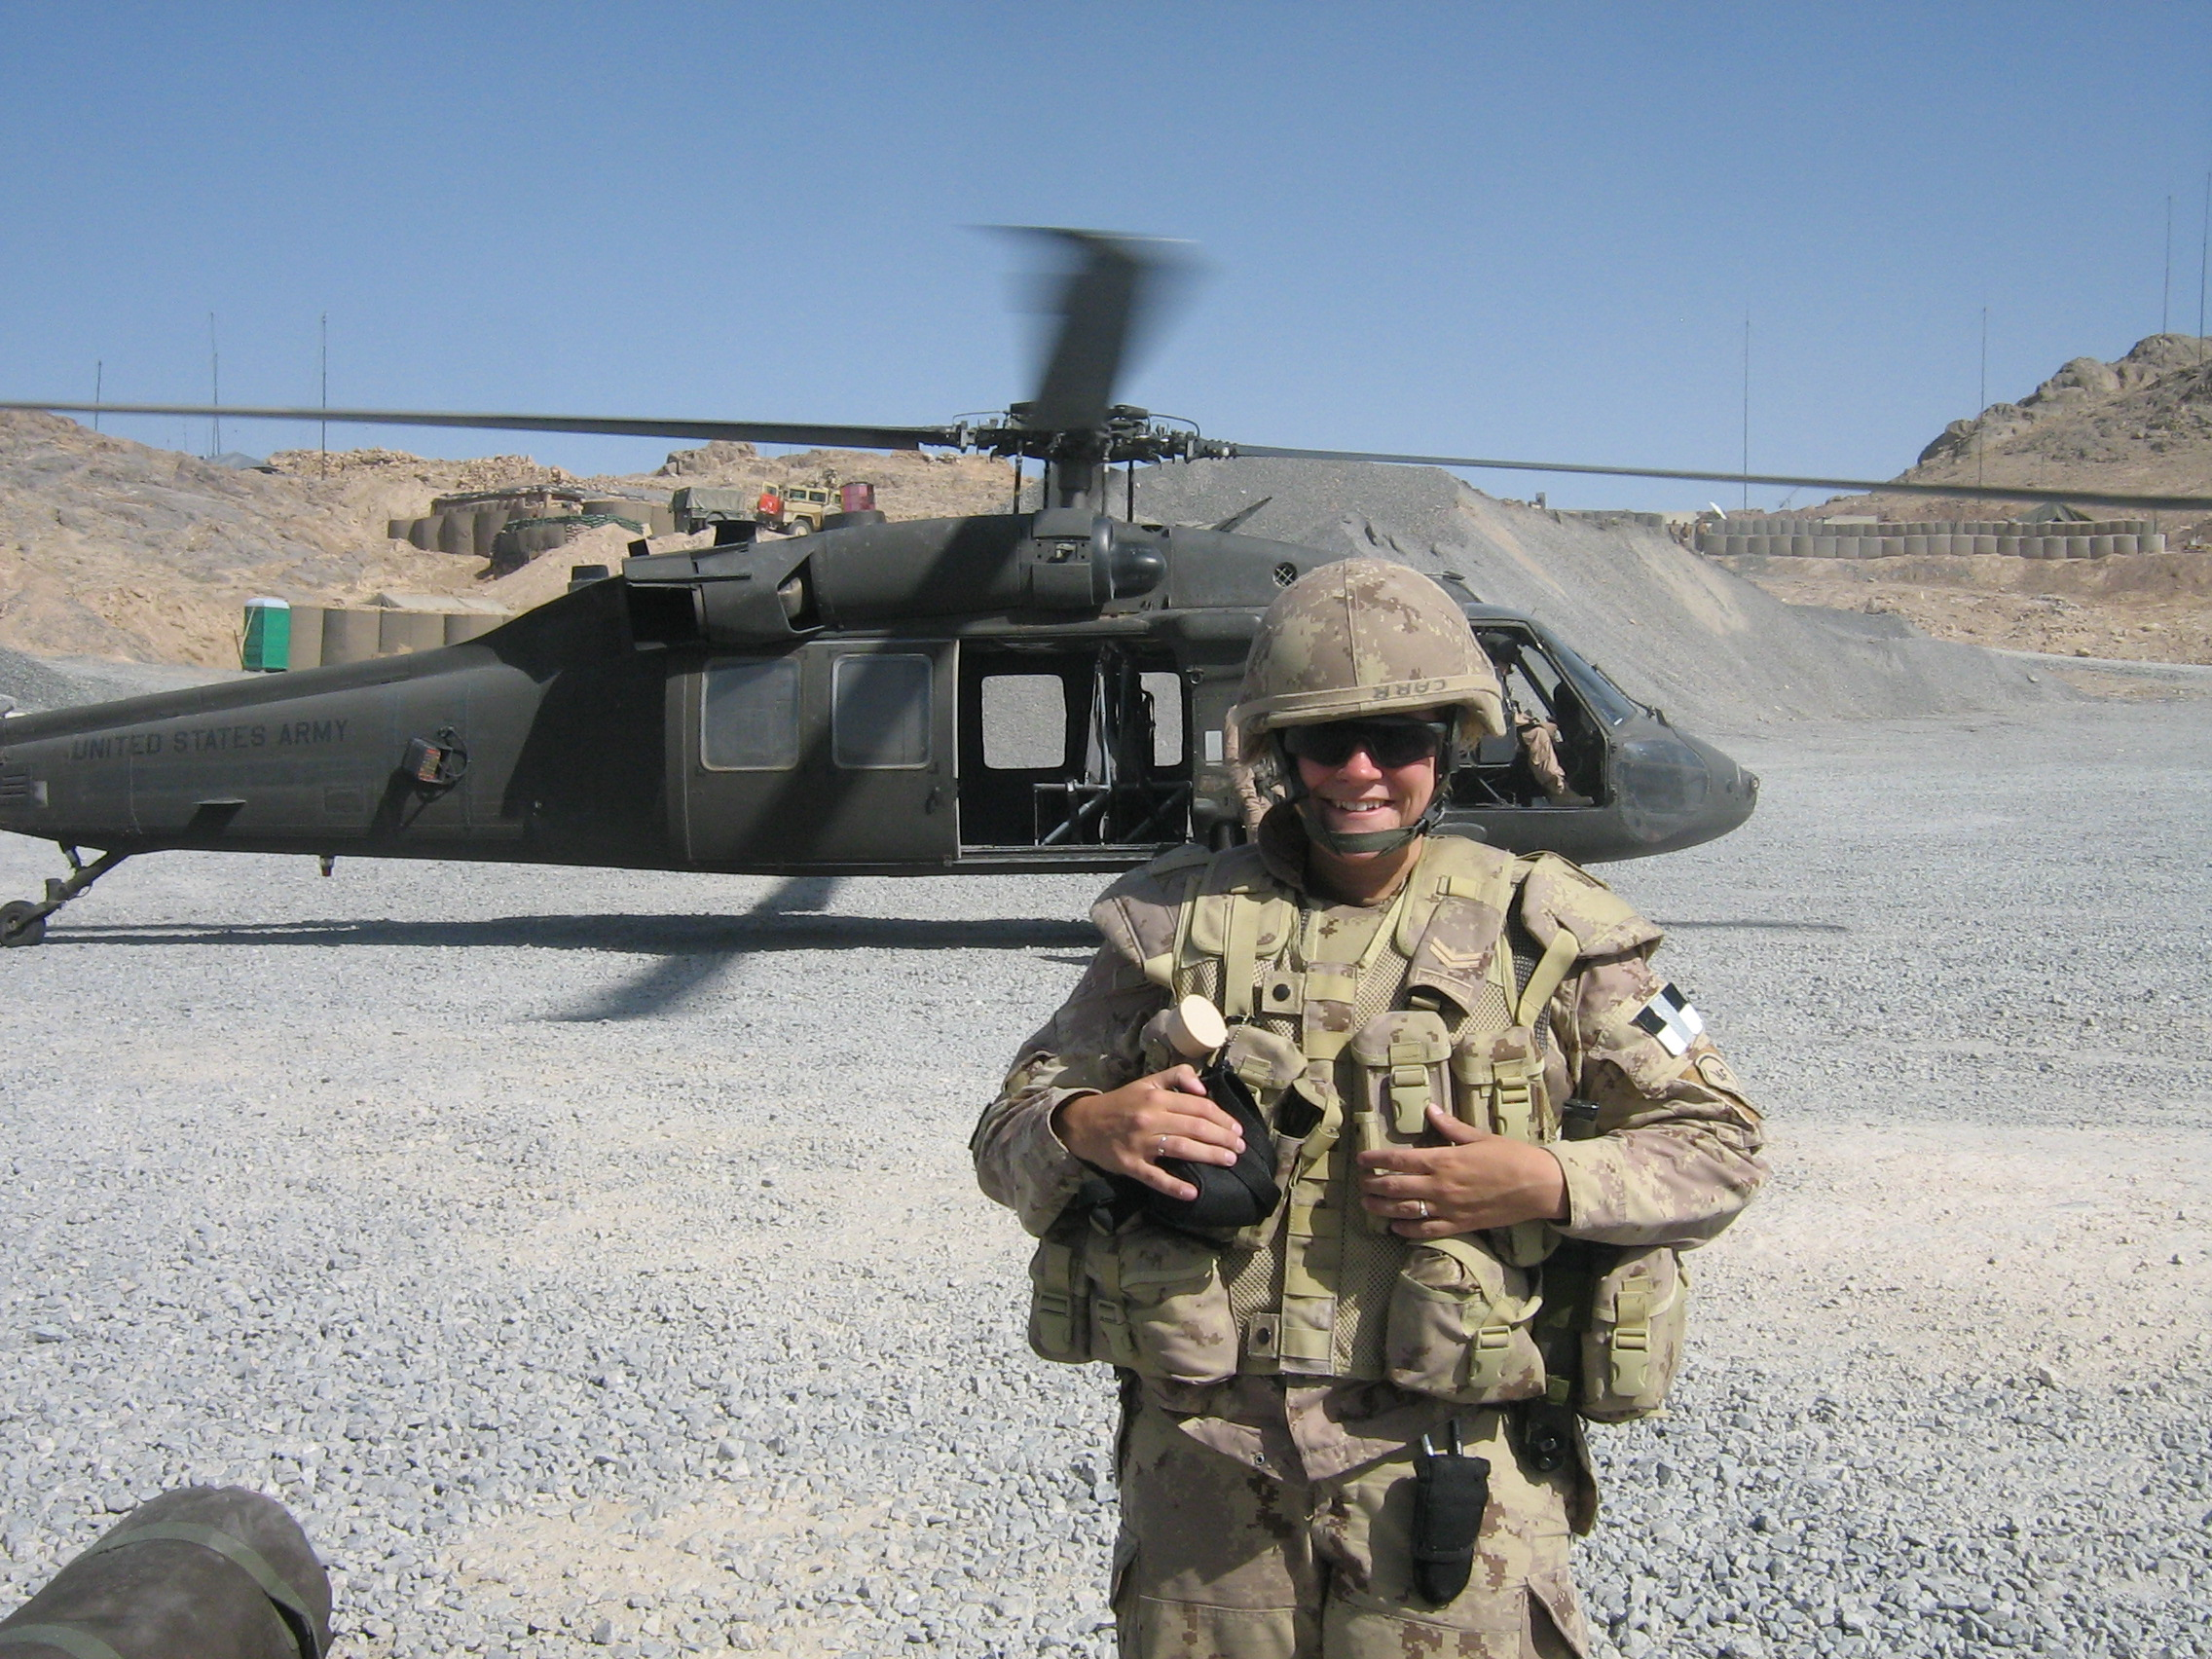 Warrant Officer Sandra Leaman in front of a United States Army Black Hawk helicopter during her deployment to Afghanistan in February 2007. PHOTO: Submitted